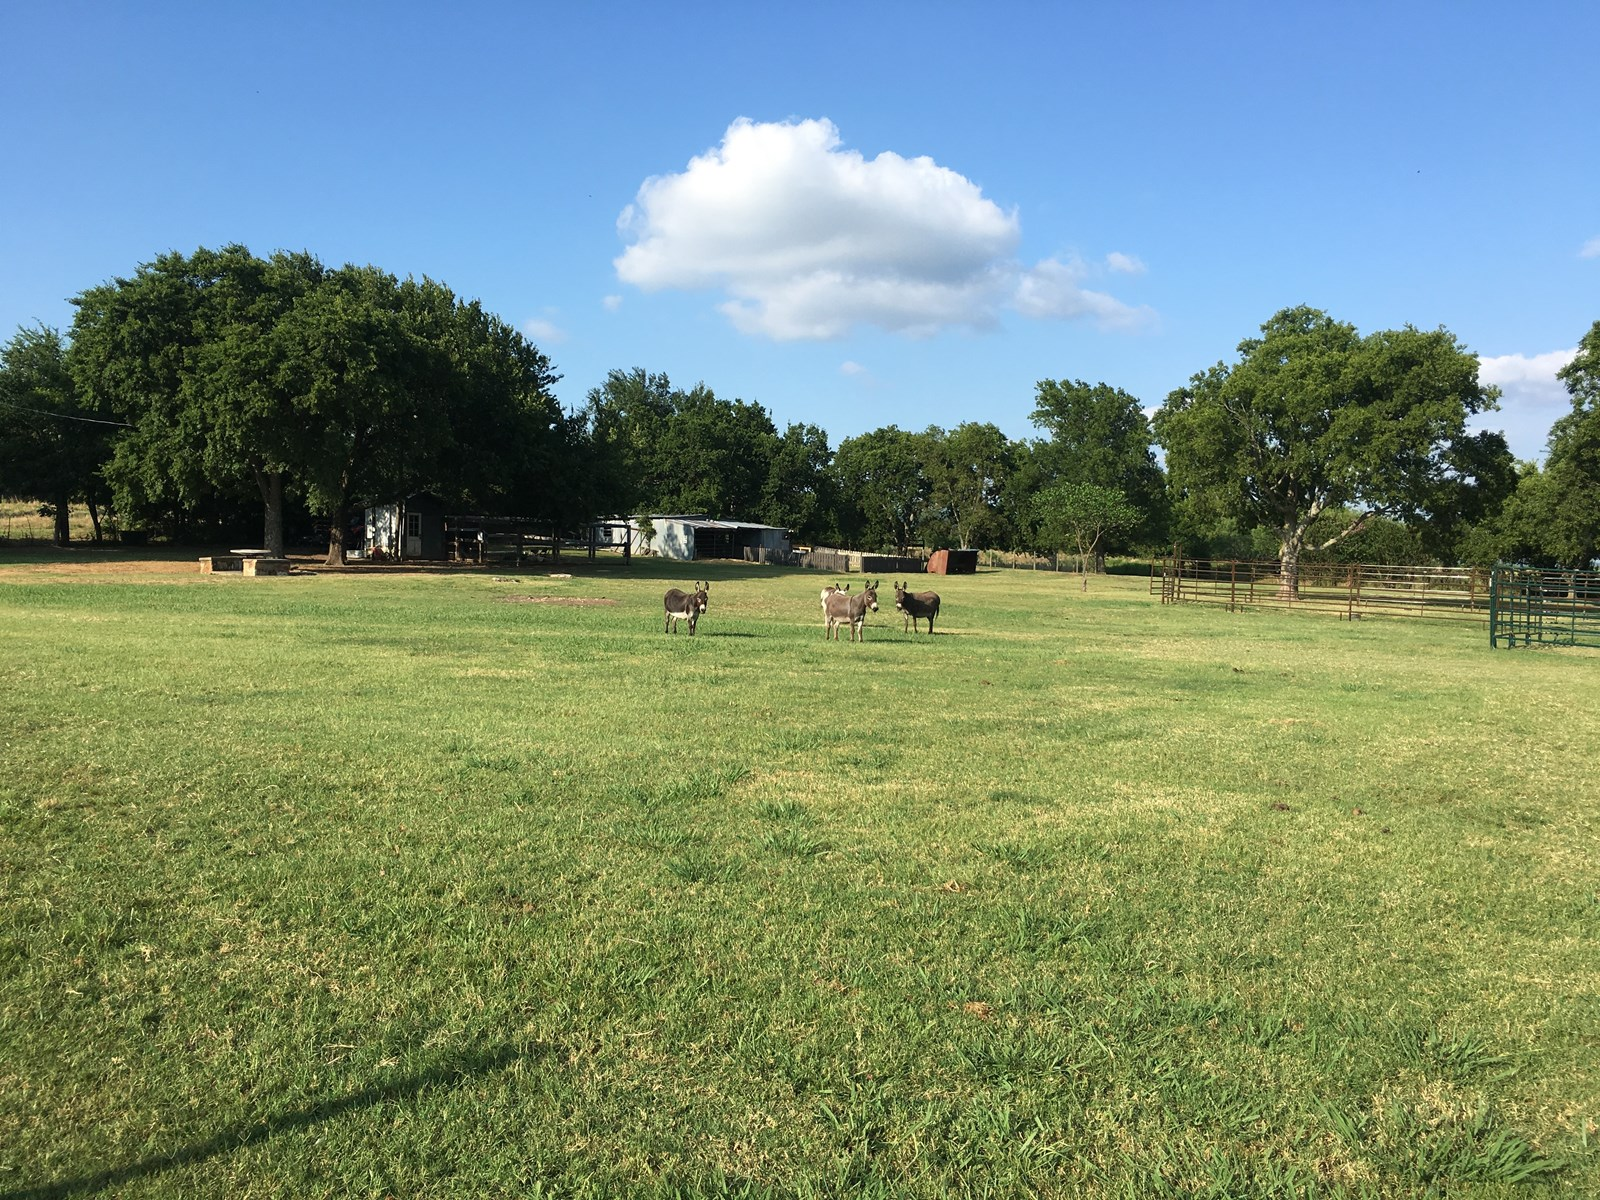 HOMES INDUSTRIAL LOT LAND HOMESITE FOR SALE ARDMORE SPRINGER CARTER COUNTY OKLAHOMA